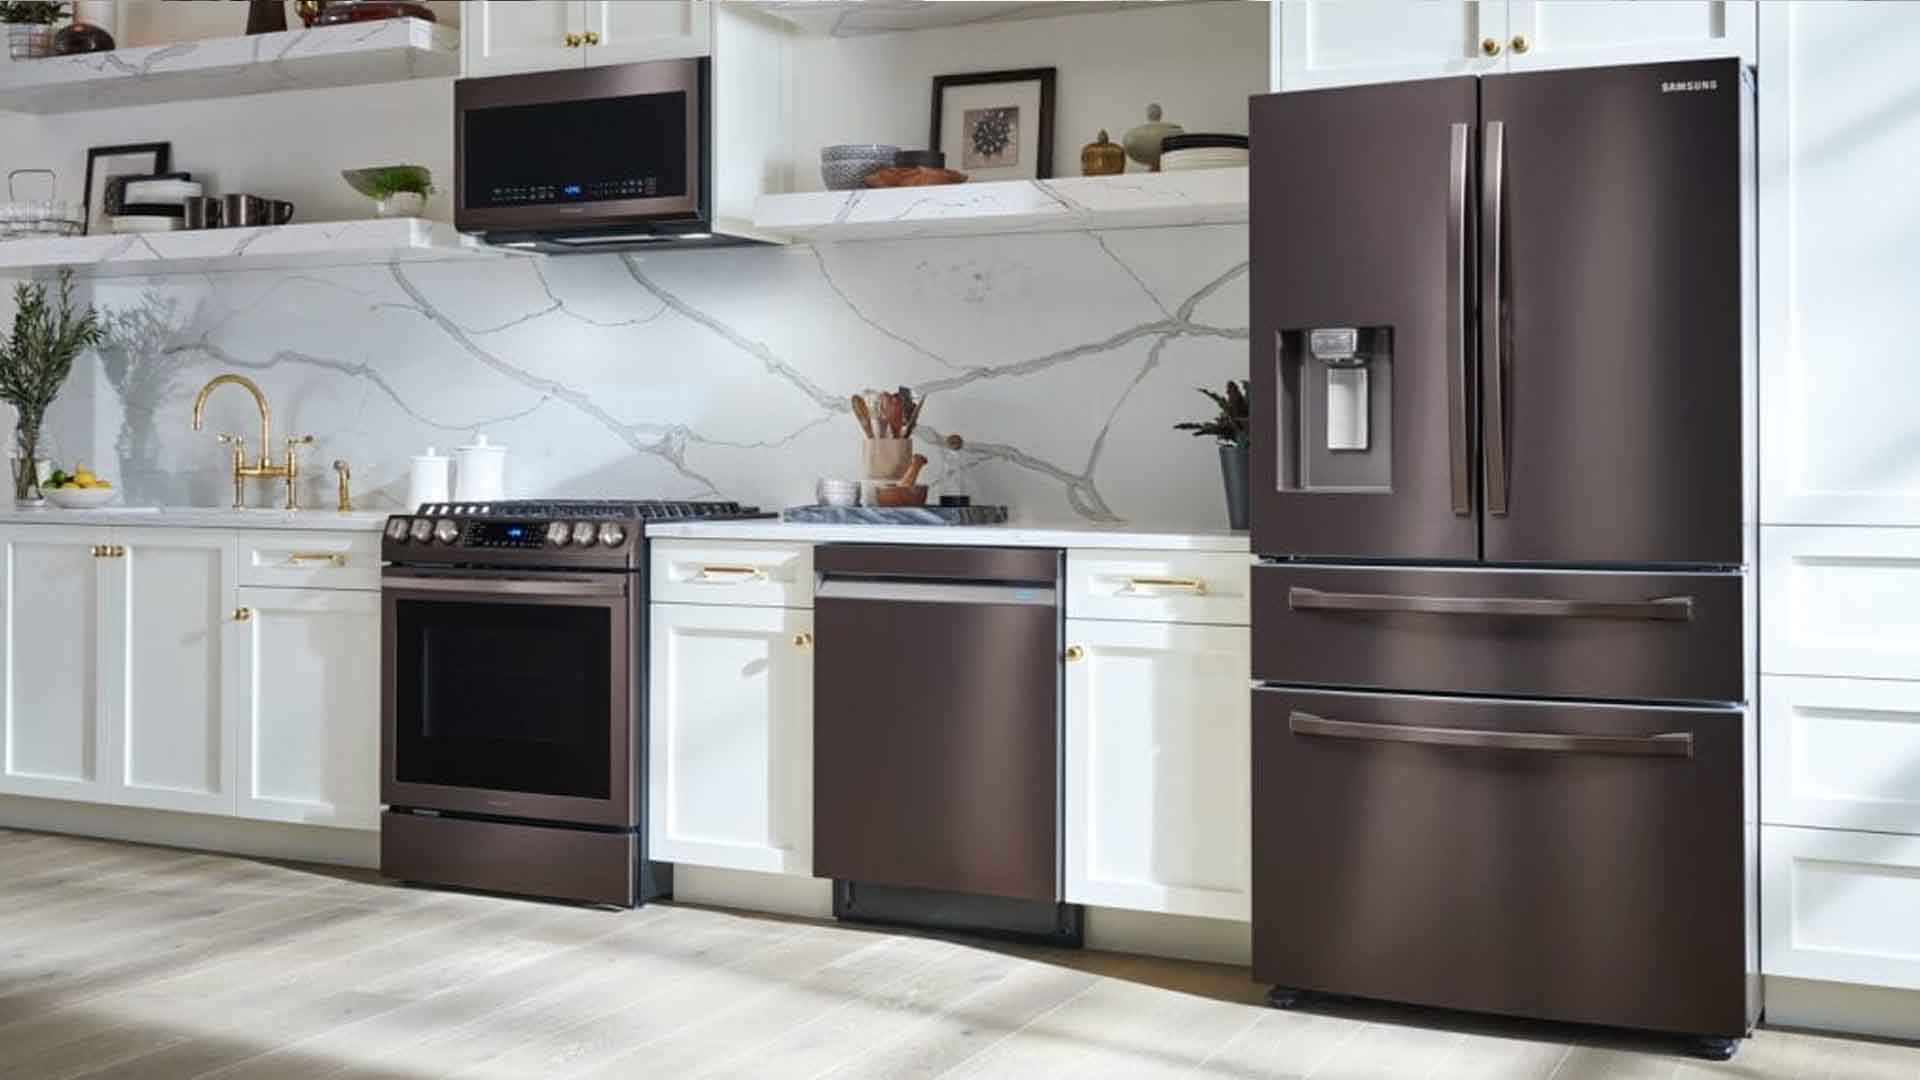 About Us | Samsung Appliance Repairs